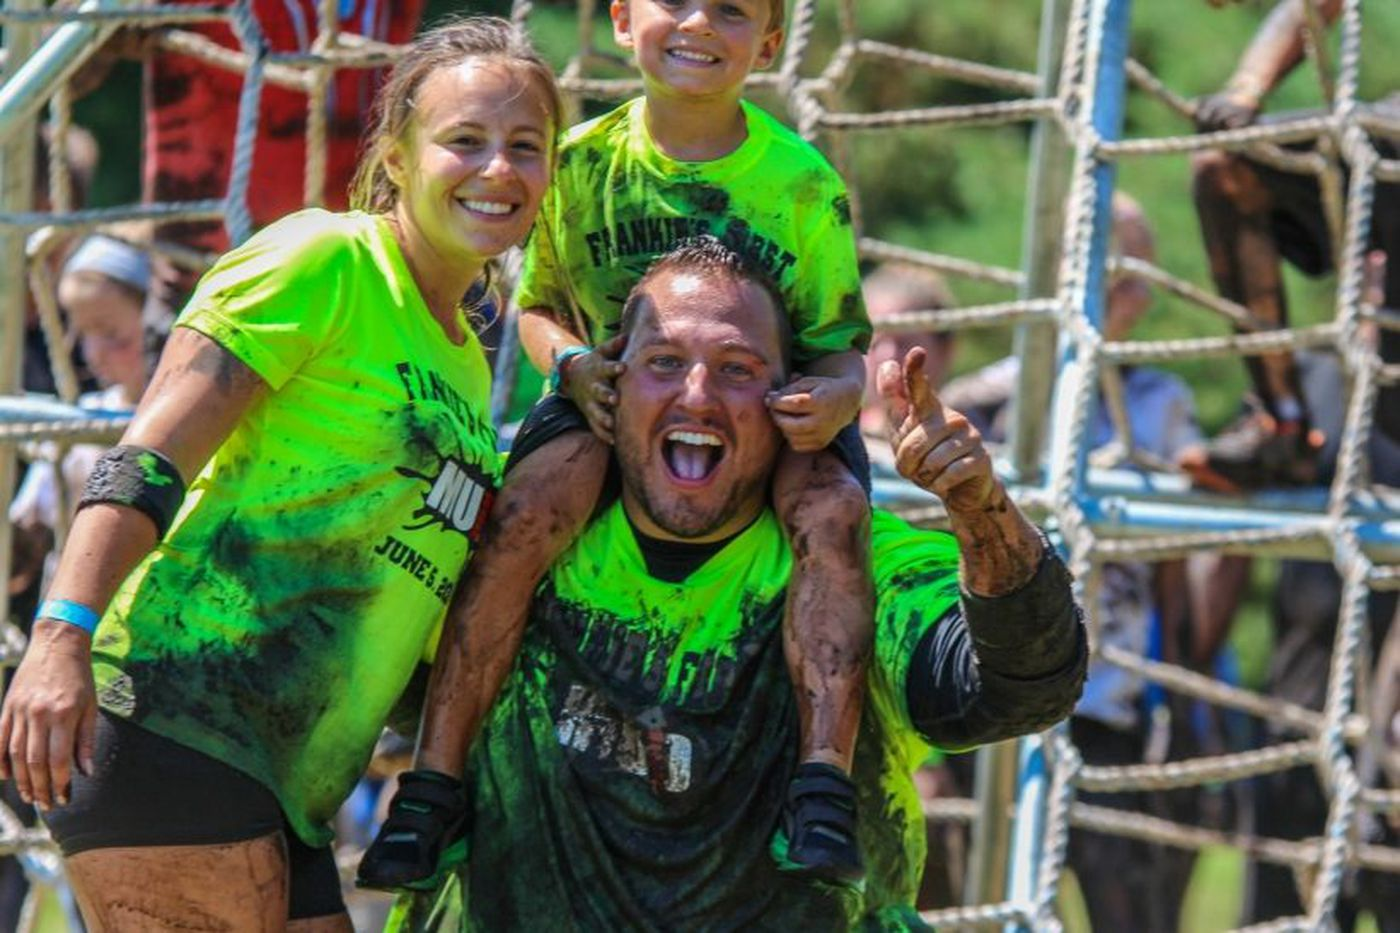 Mud run, 'Hamlet,' and more things to do down the Shore from July 28 to 30